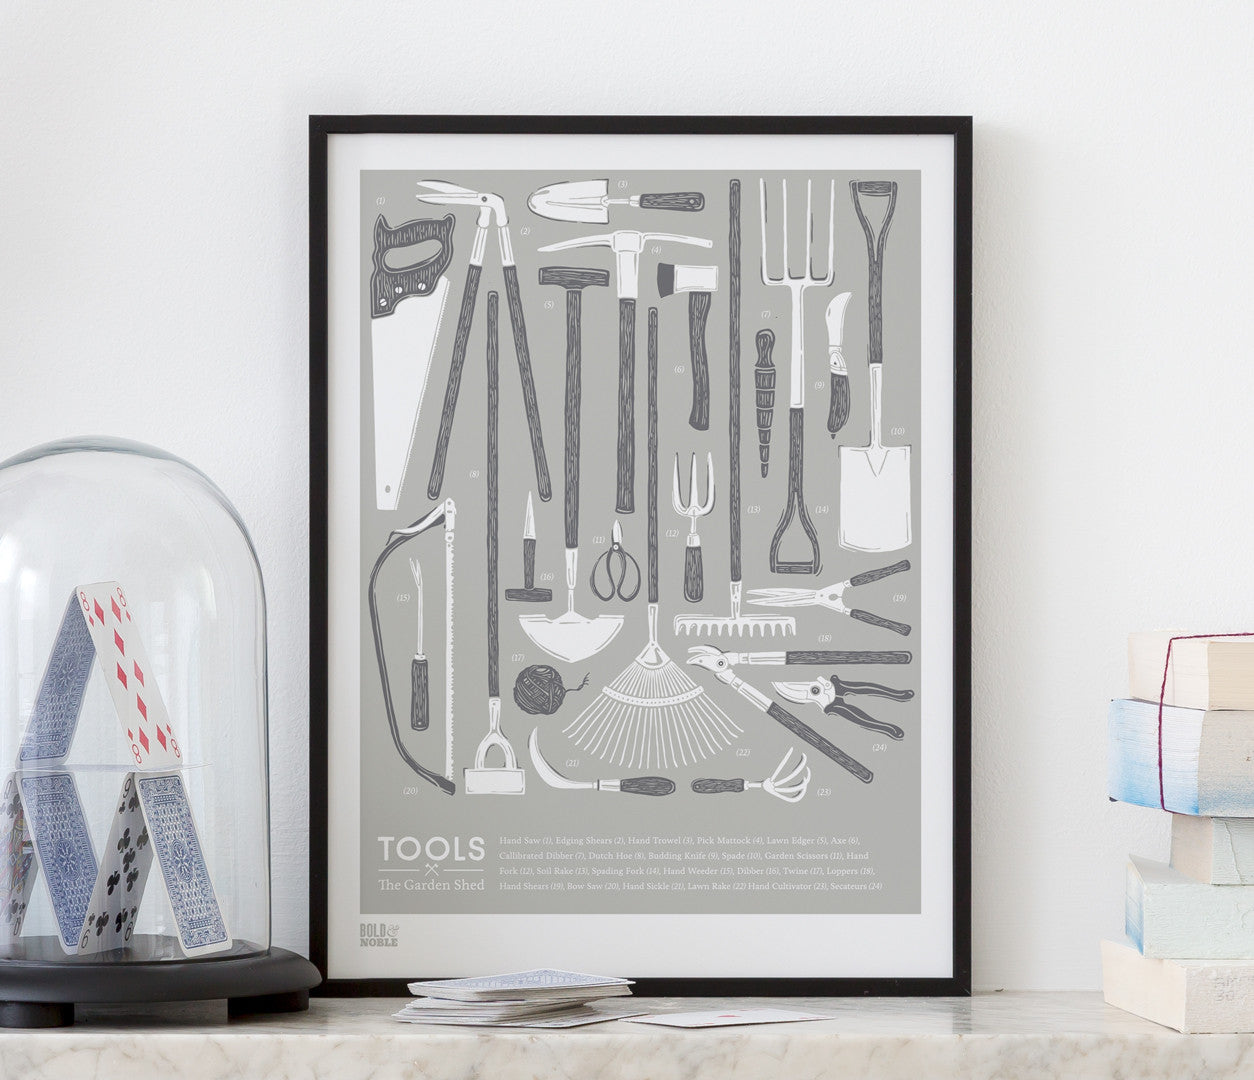 'Tools' The Garden Shed Print in Putty